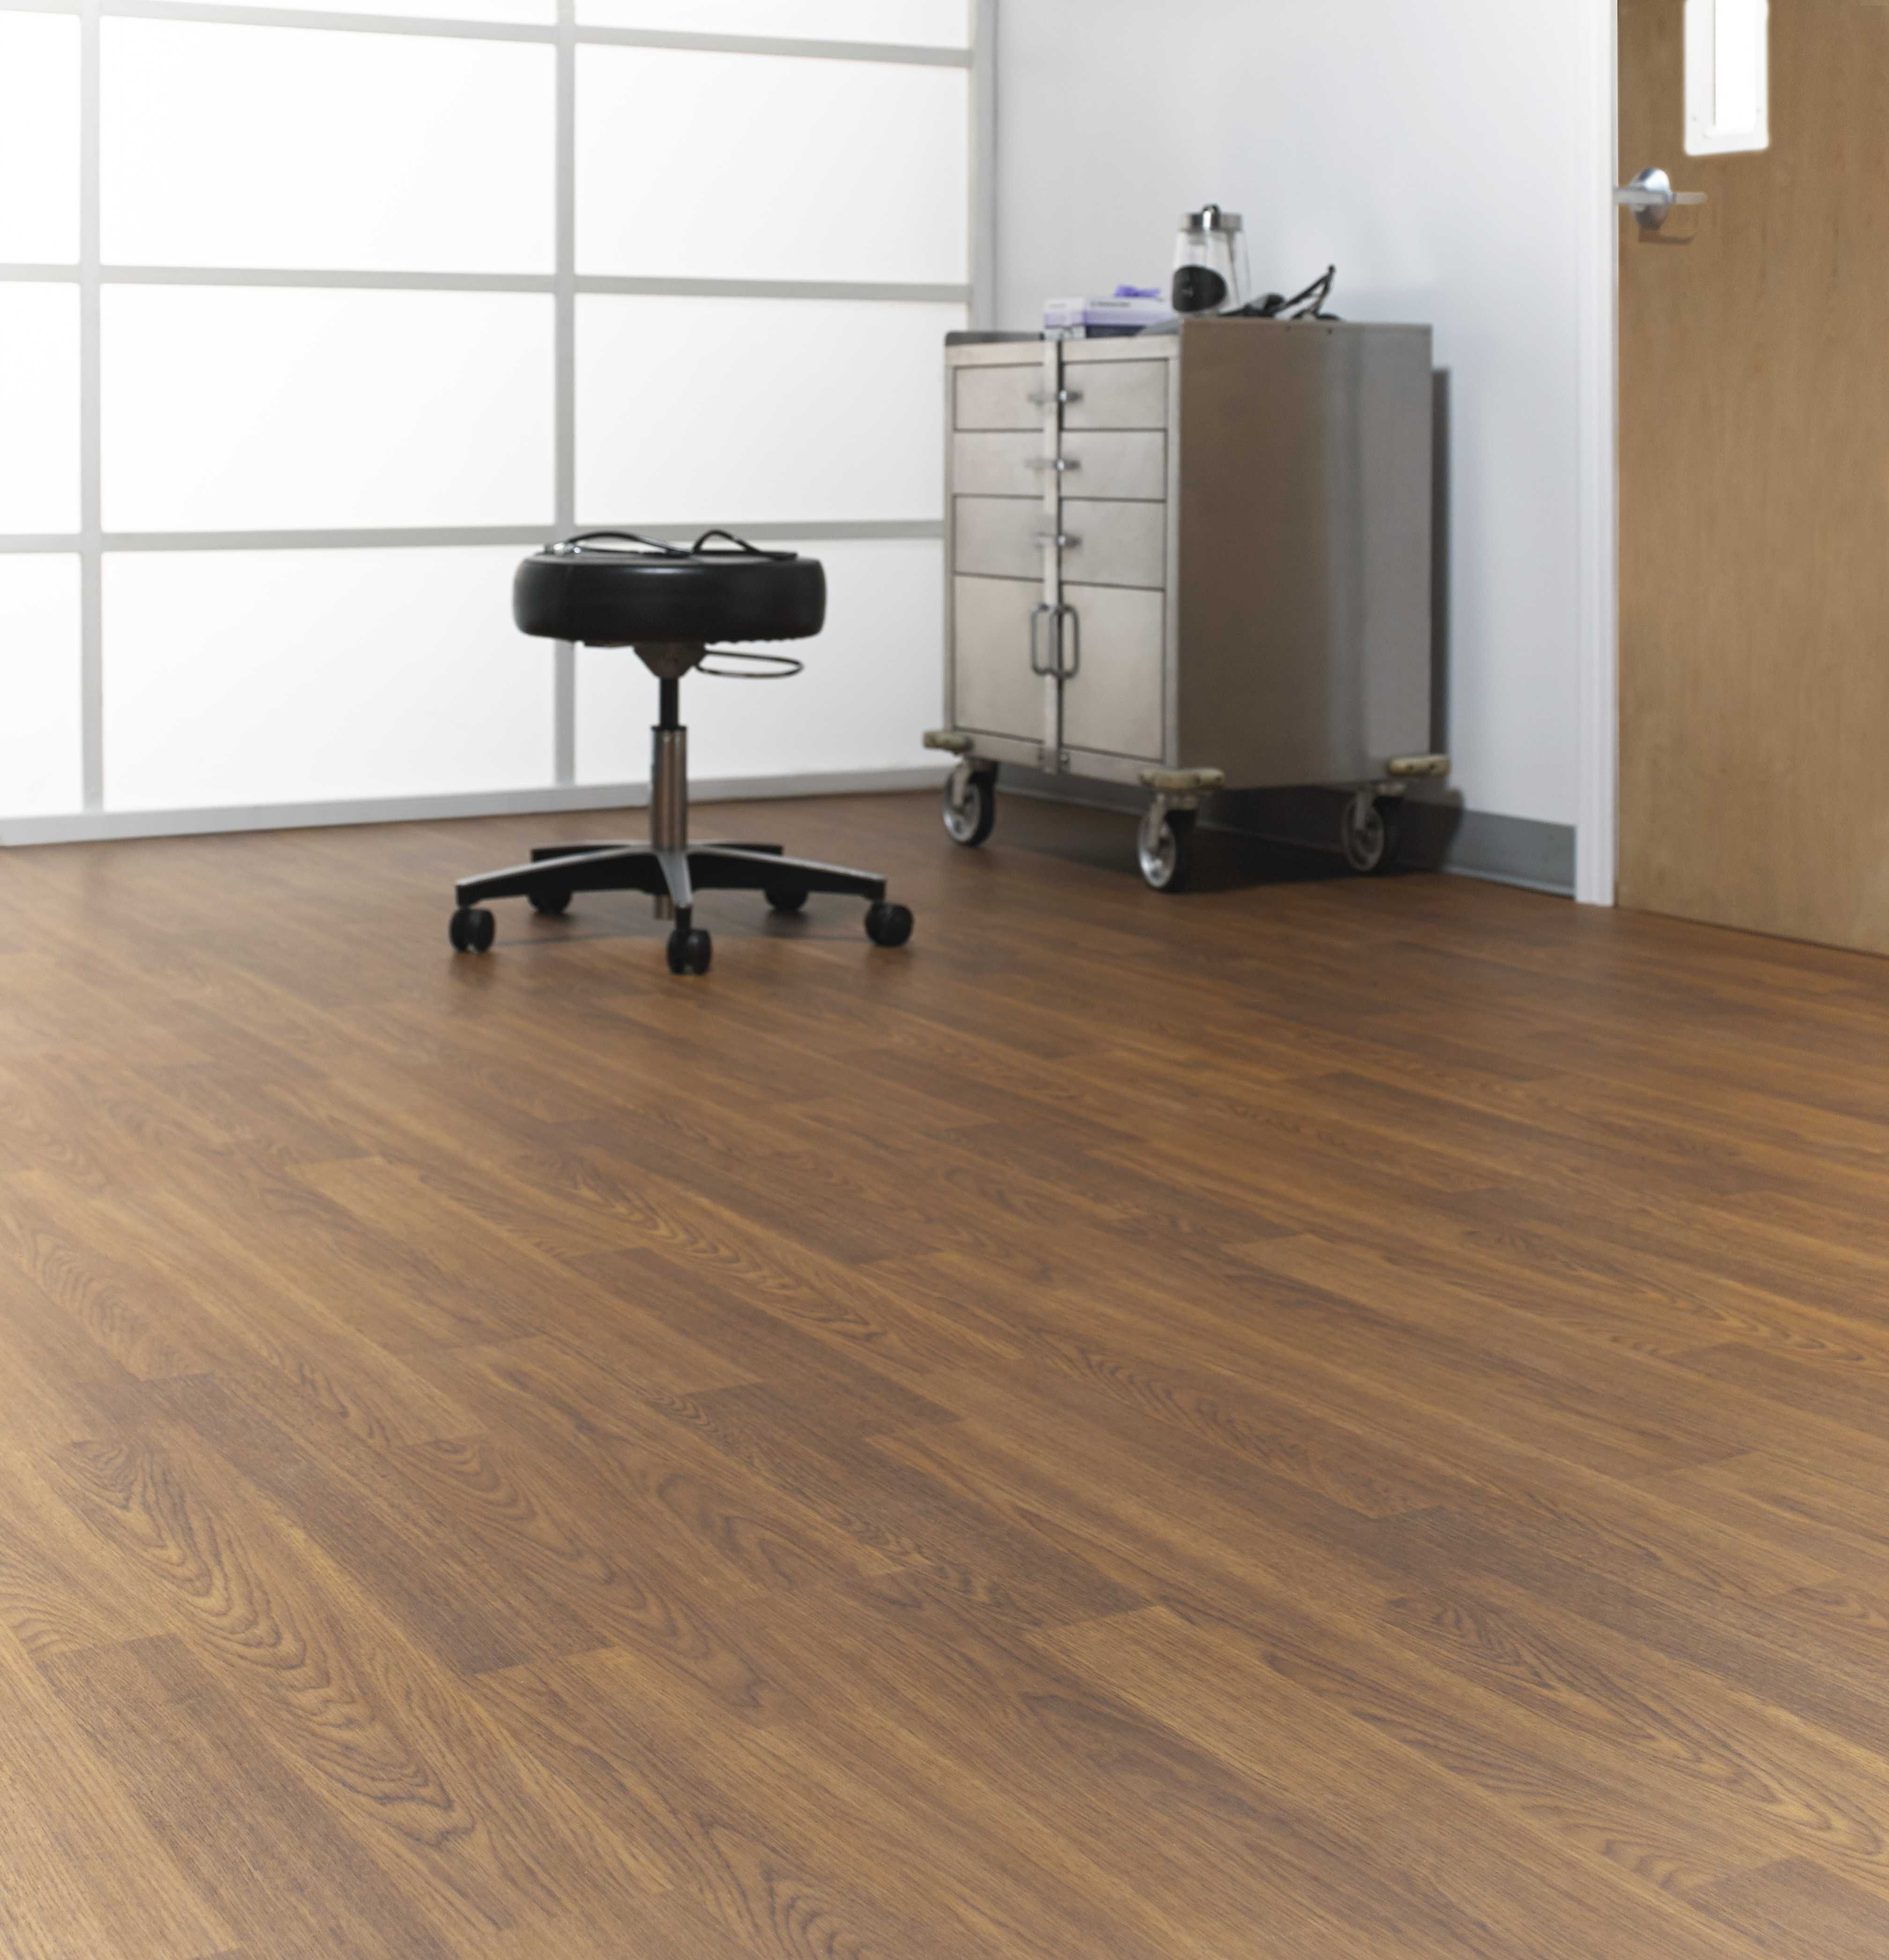 remain range of wide easy most wood a products com in are styles clean these floors popular laminate the choices durable mohawk sheet available americancarpetpa tile one and they colors to vinyl flooring